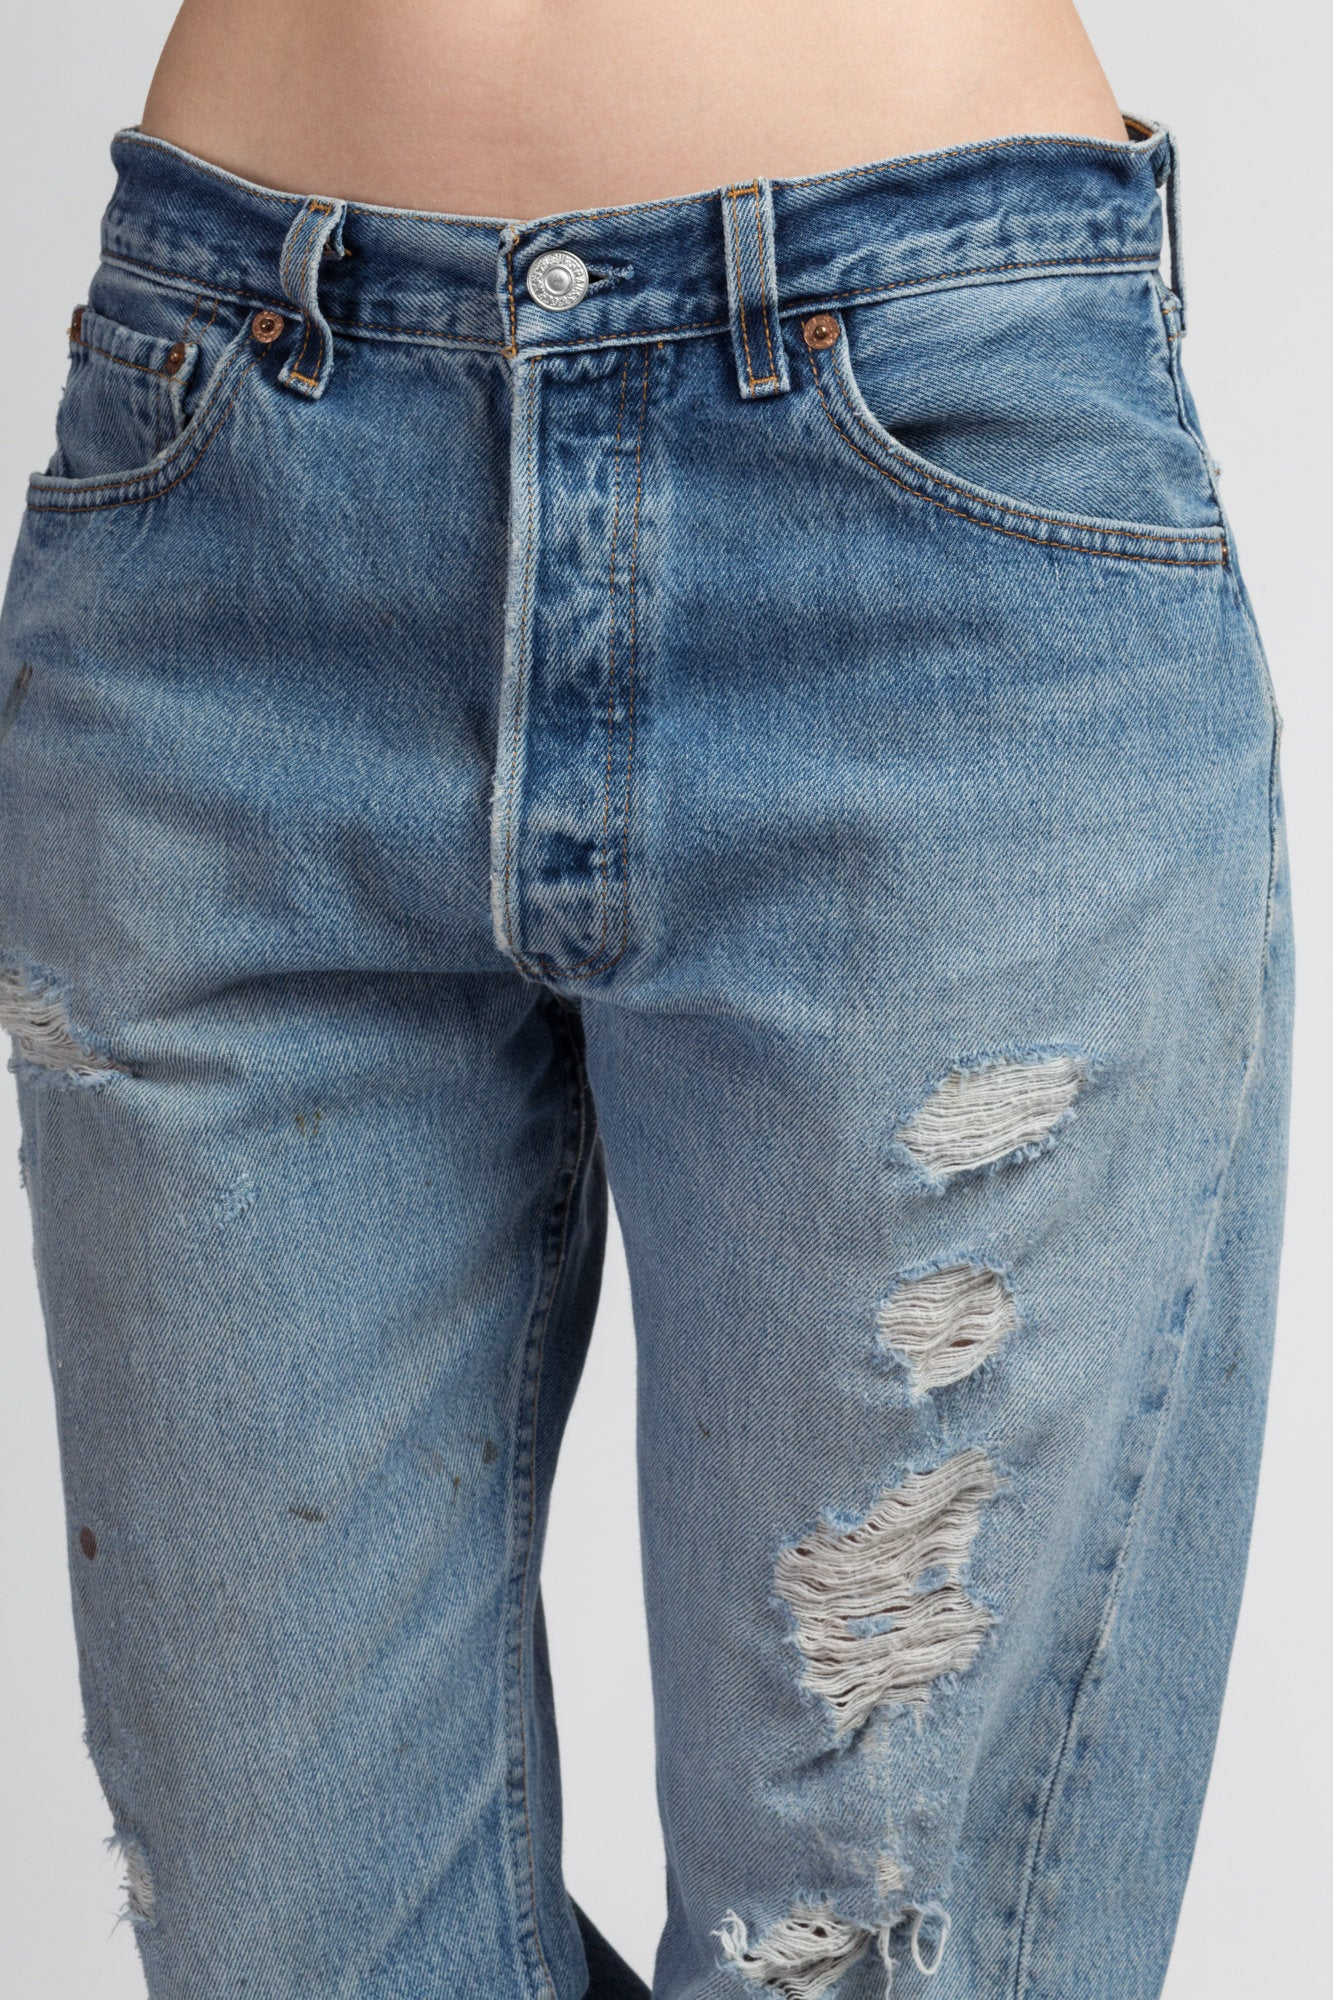 Vintage Levi's 501 Made In USA Distressed Jeans - 32x32